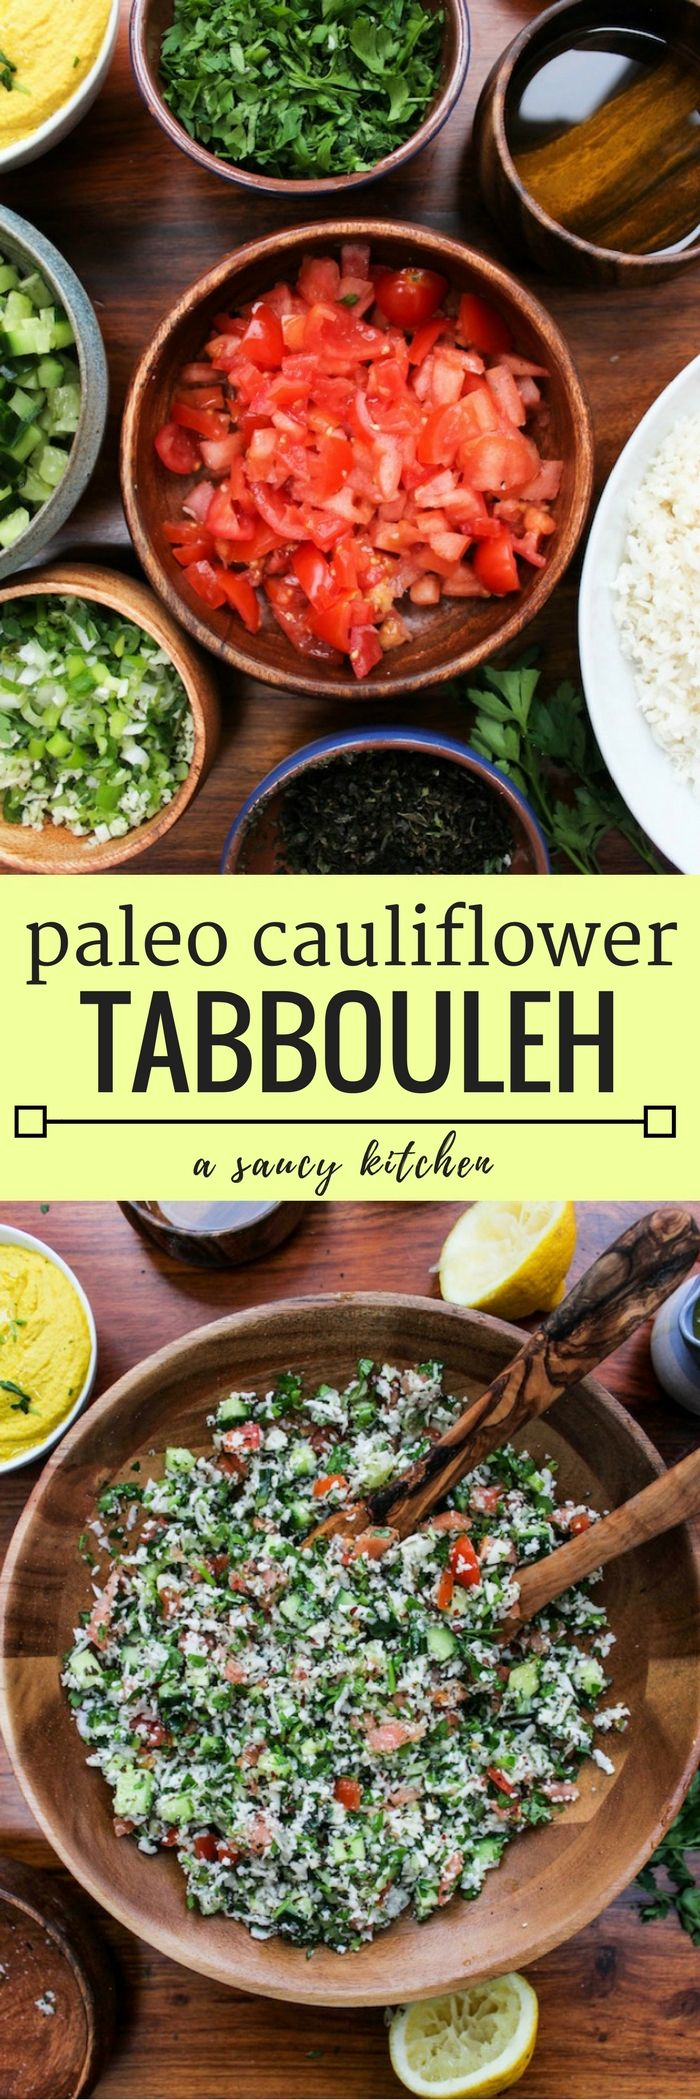 Cauliflower Tabbouleh - a Middle Eastern classic made gluten free | Vegan + Paleo + Whole 30